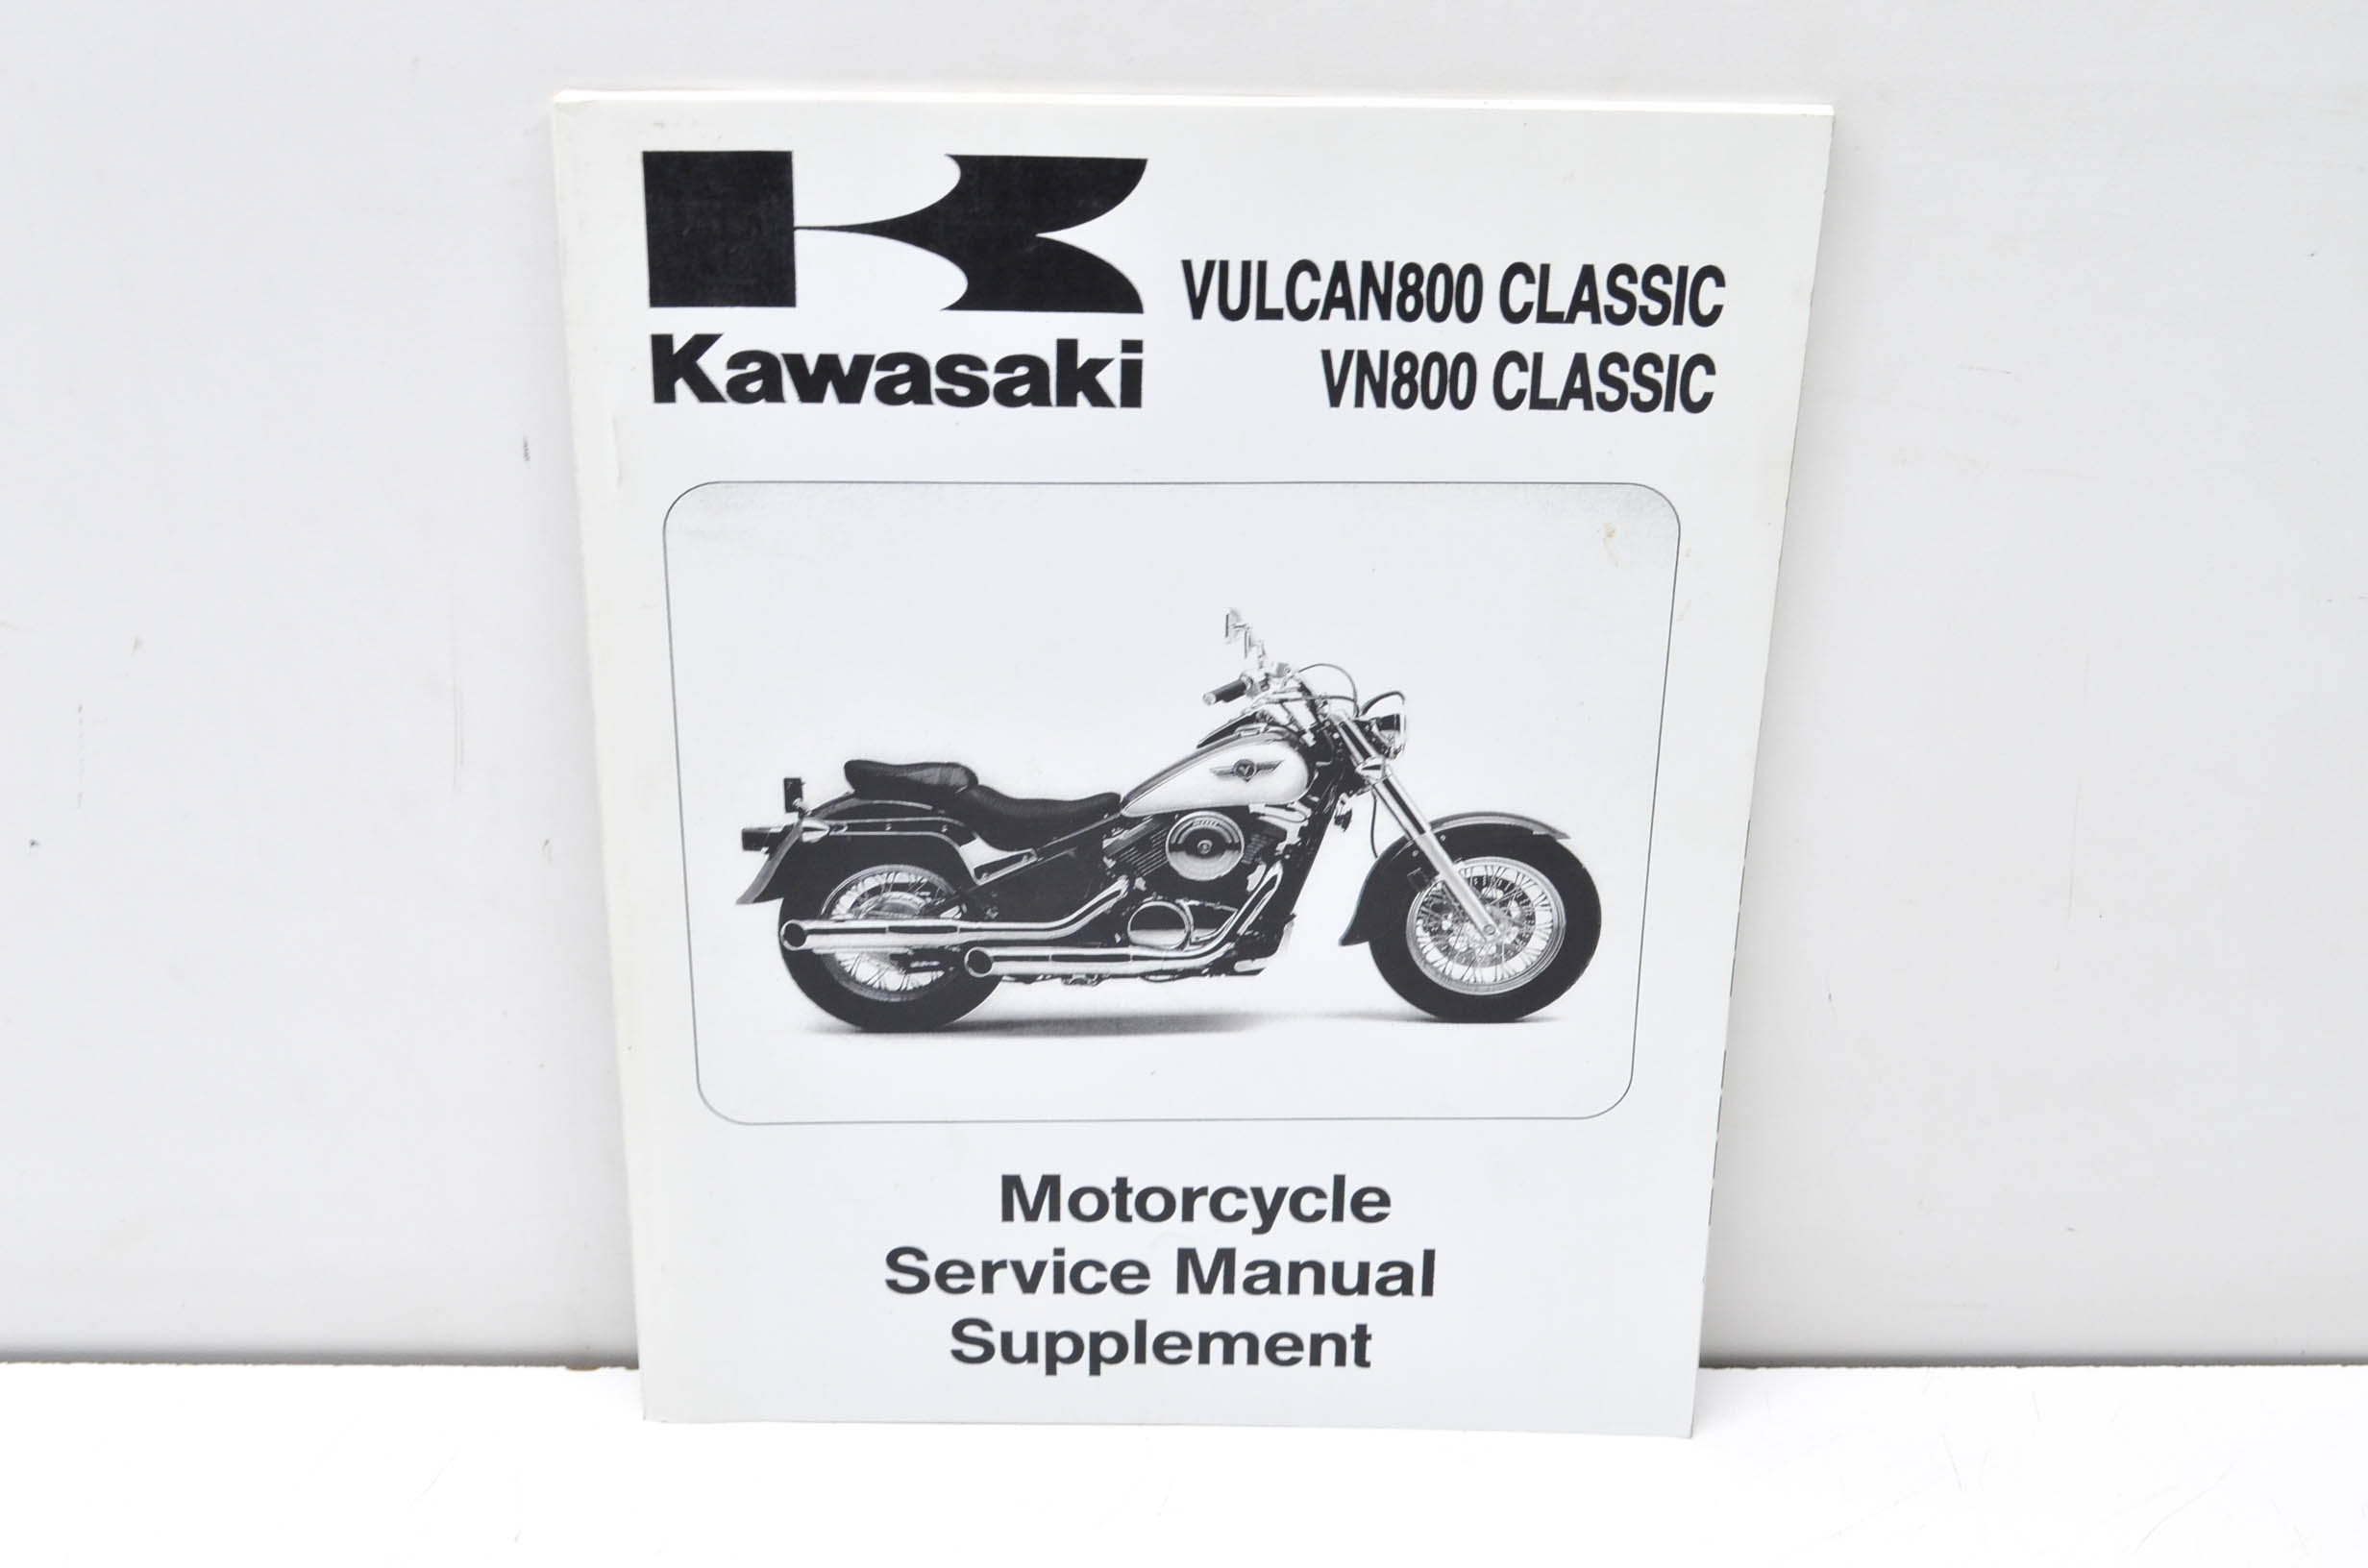 Kawasaki 99924 1199 56 1996 2002 Vulcan Vn 800 Classic Service Vespa Scooter Wiring Schematic Manual Supplement Qty 1